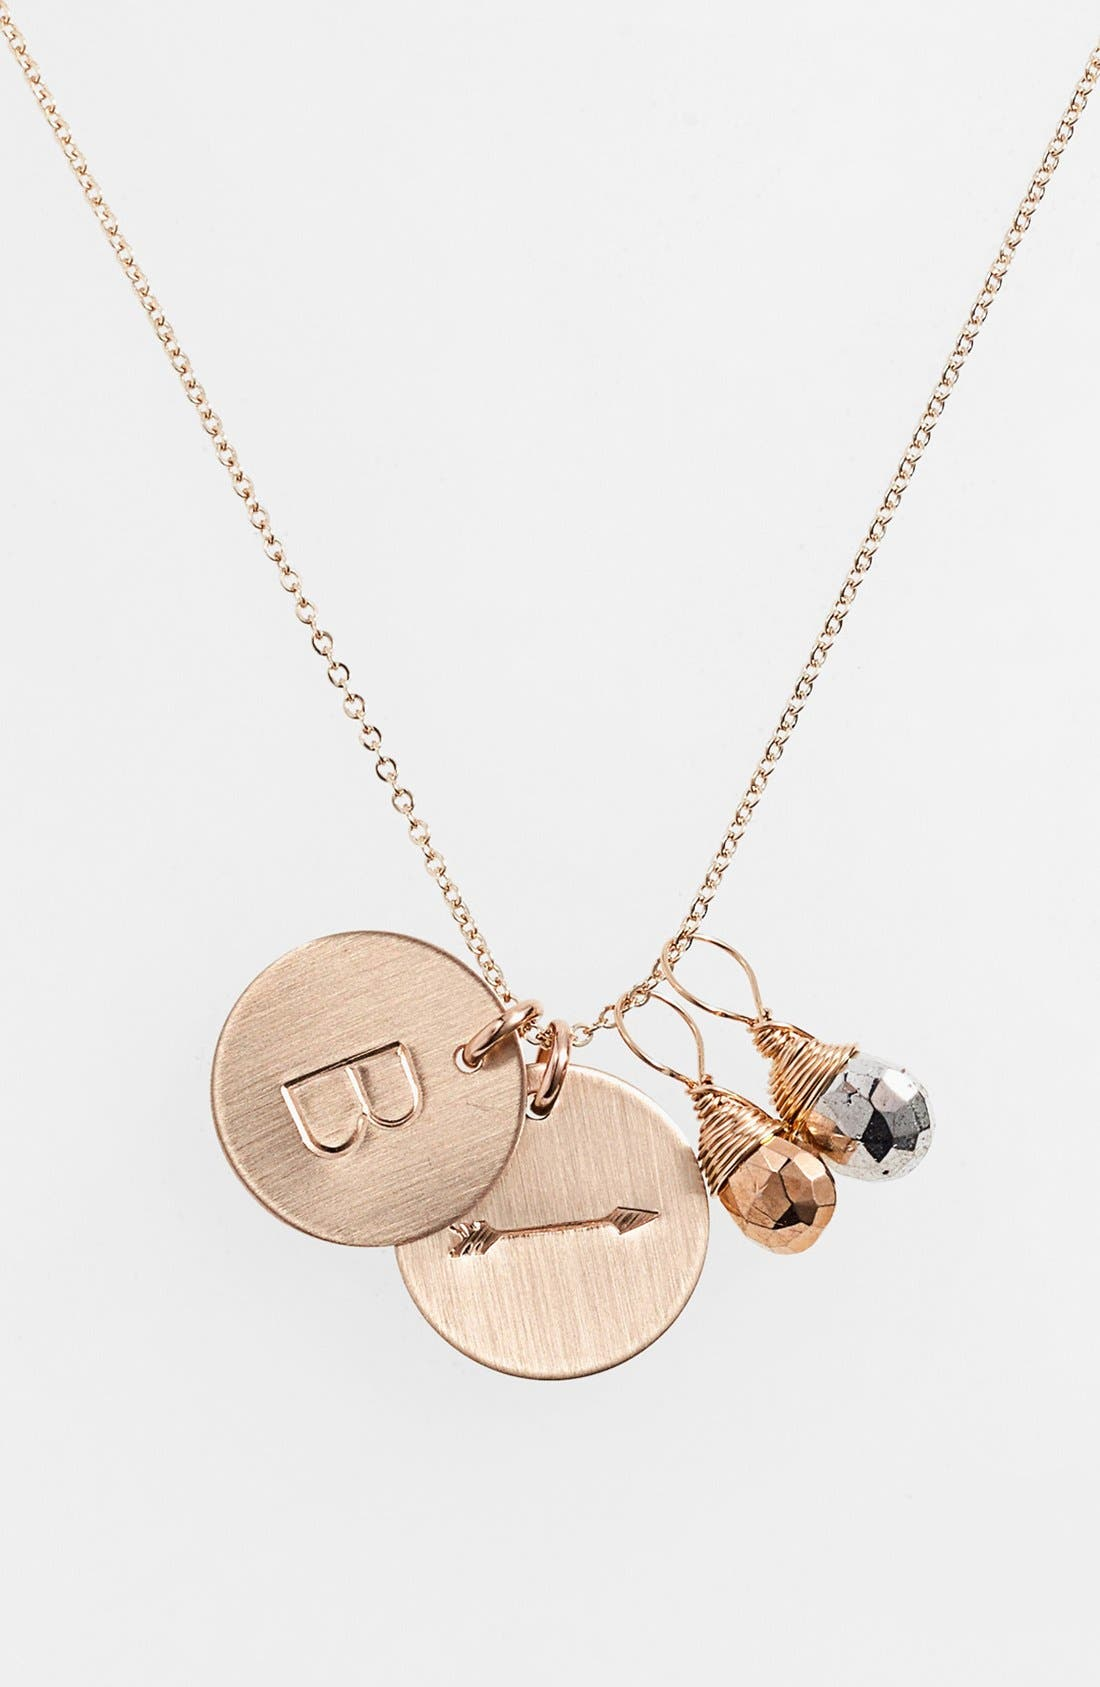 Alternate Image 1 Selected - Nashelle Pyrite Initial & Arrow 14k-Gold Fill Disc Necklace